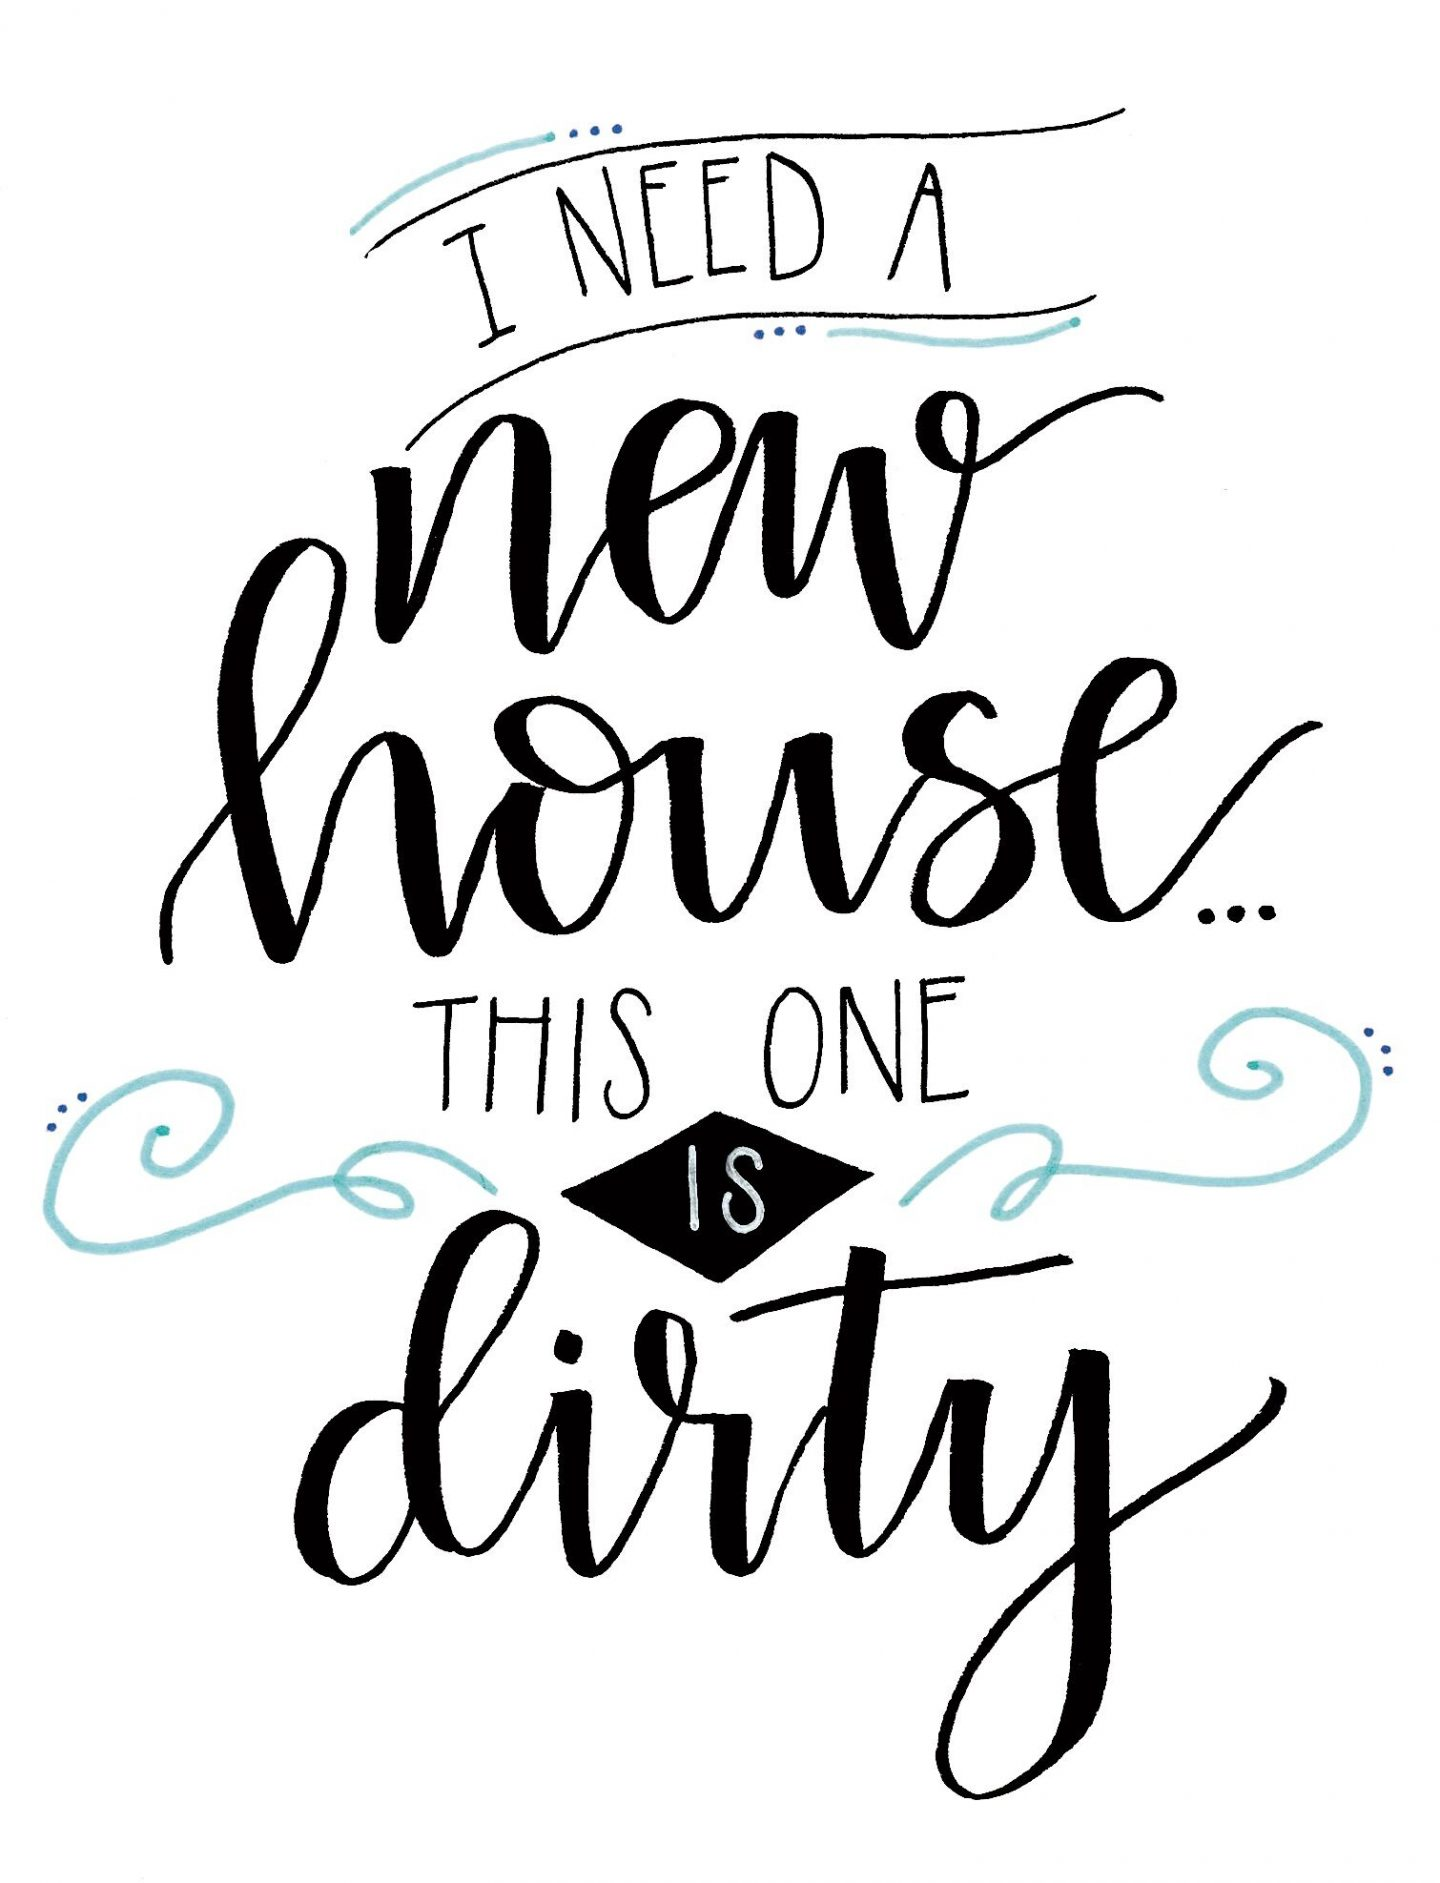 Funny handlettered quote about housework by Amy Latta. #momproblems #funnyquote #handlettering #housework